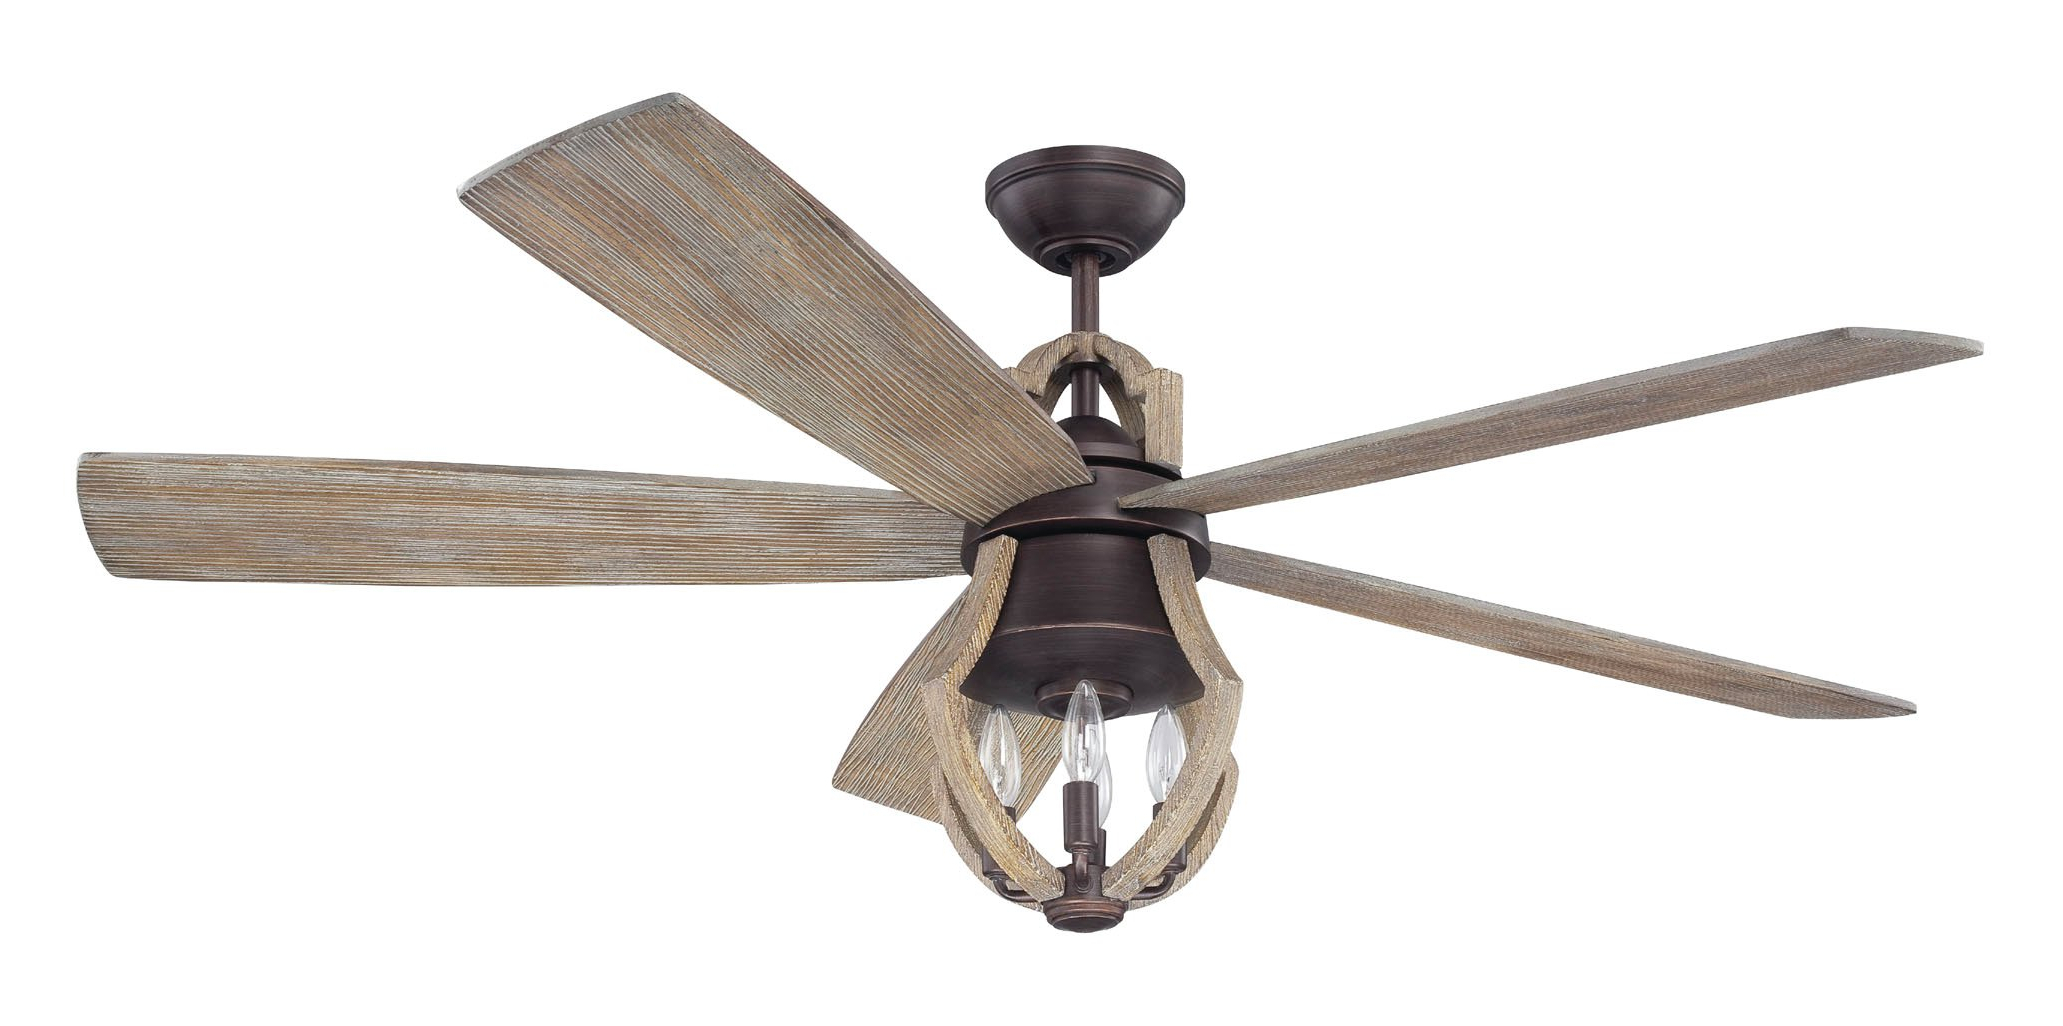 "Most Recently Released 56"" Marcoux 5 Blade Ceiling Fan With Remote, Light Kit Regarding Clybourn 5 Blade Ceiling Fans (View 4 of 20)"